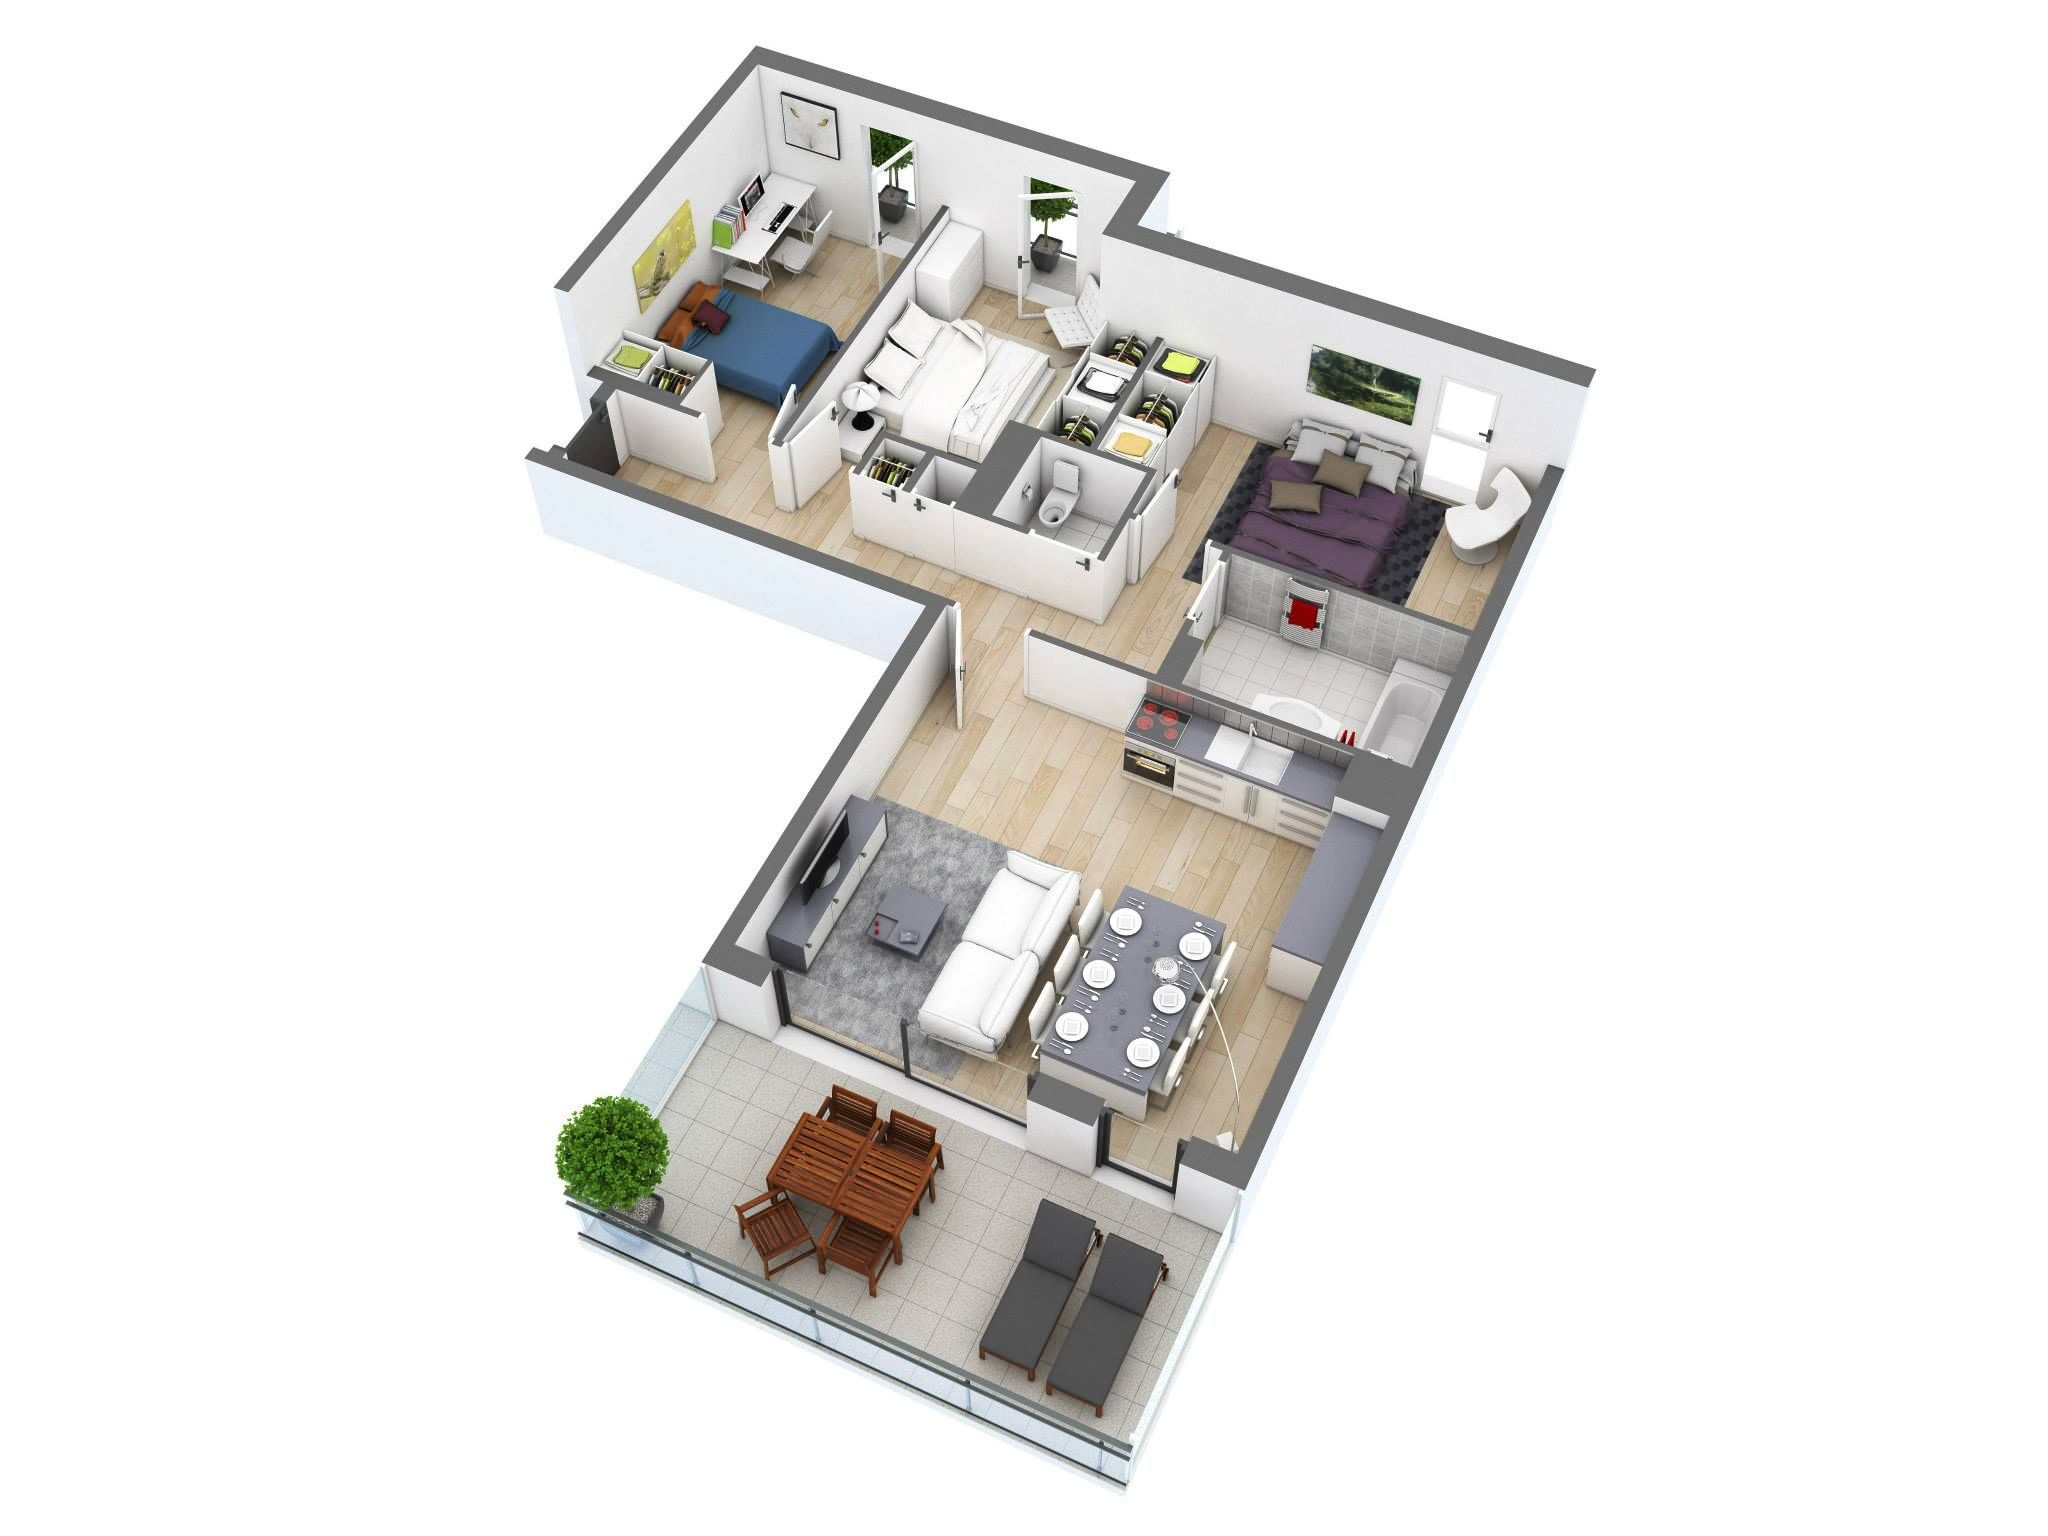 3 bedroom floor plans - House Plans And Designs